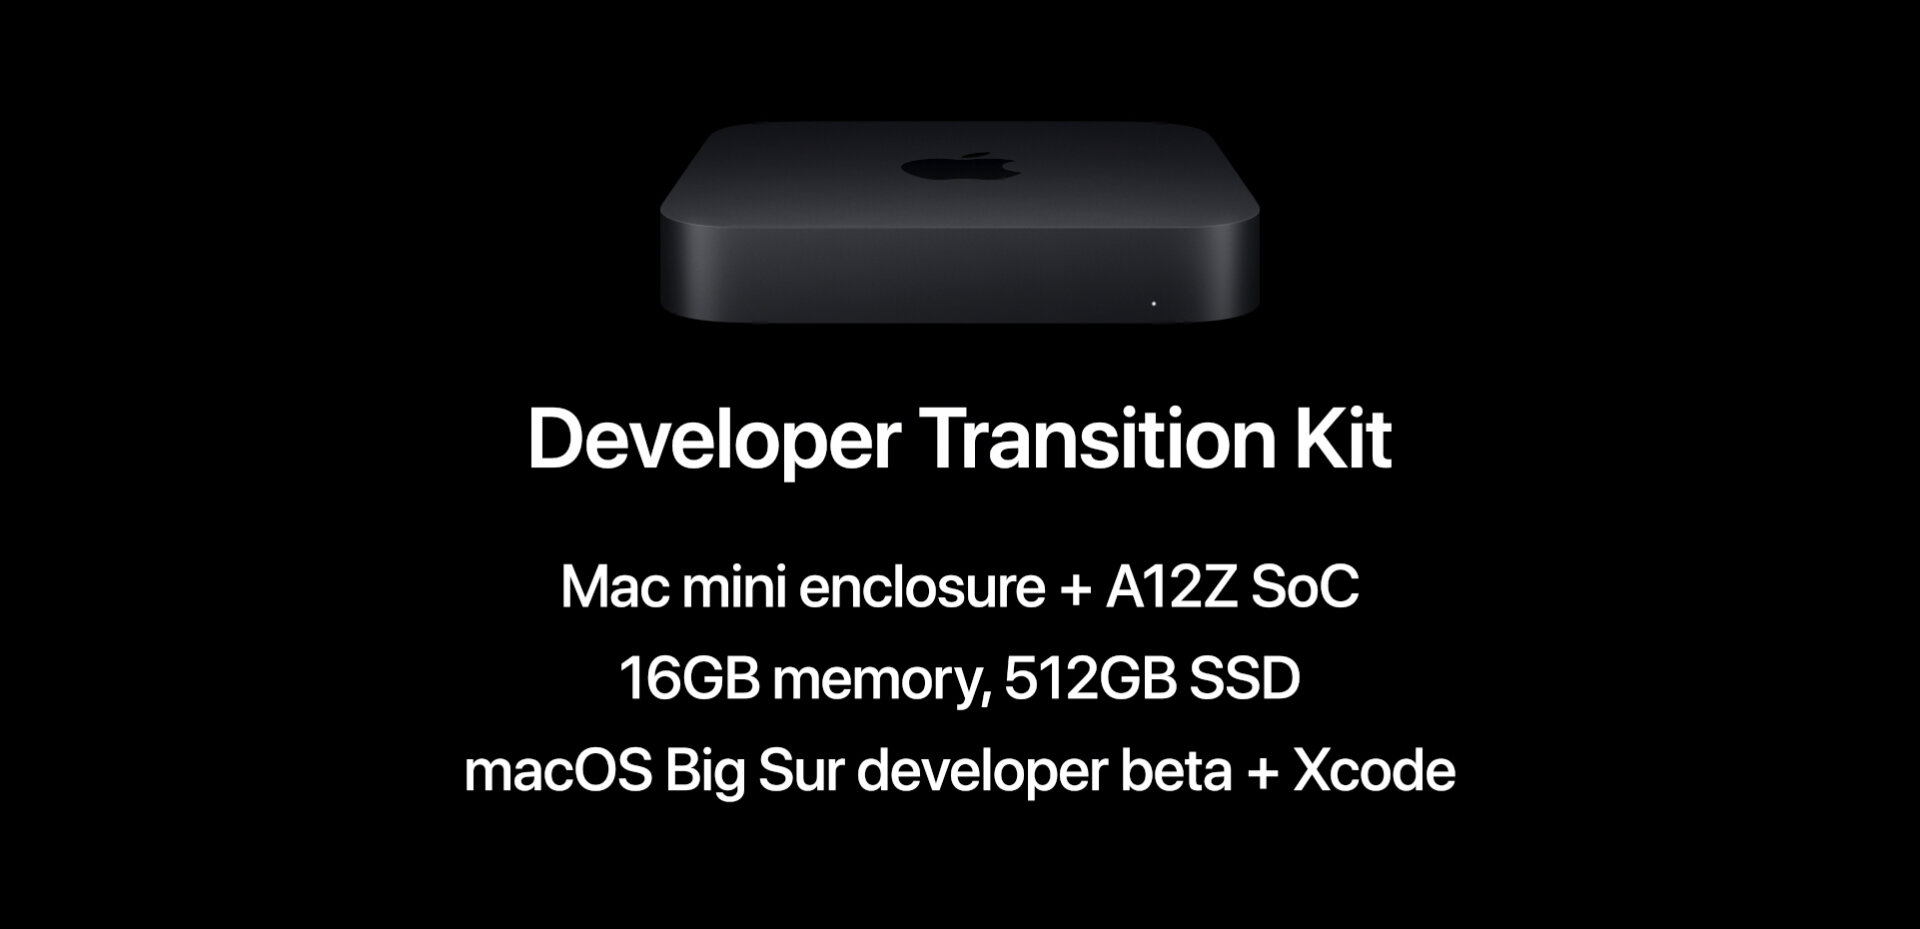 Apple Developer Transition Kit : benchmarks interdits pour son Mac mini avec SoC A12Z Bionic